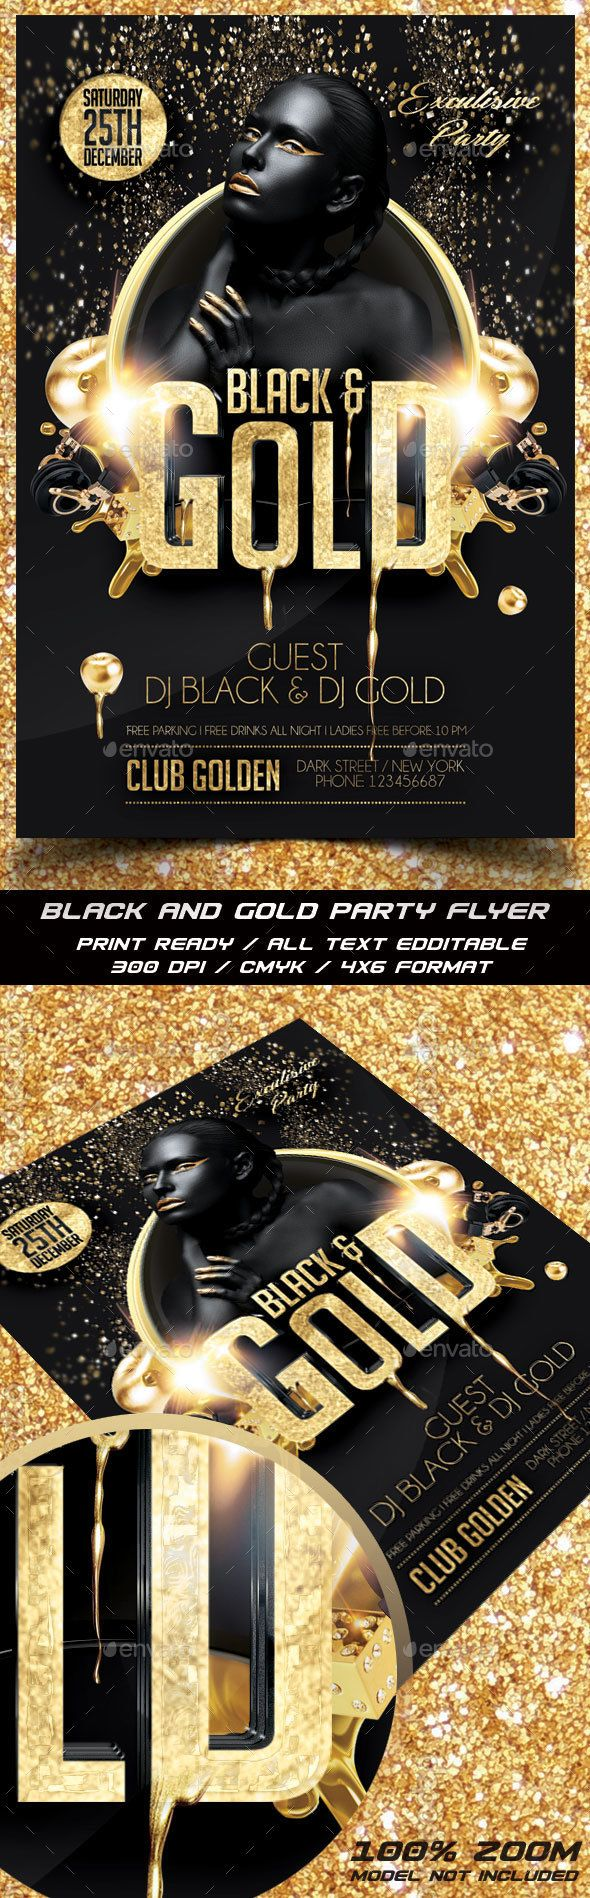 pin by best graphic design on flyer templates pinterest party